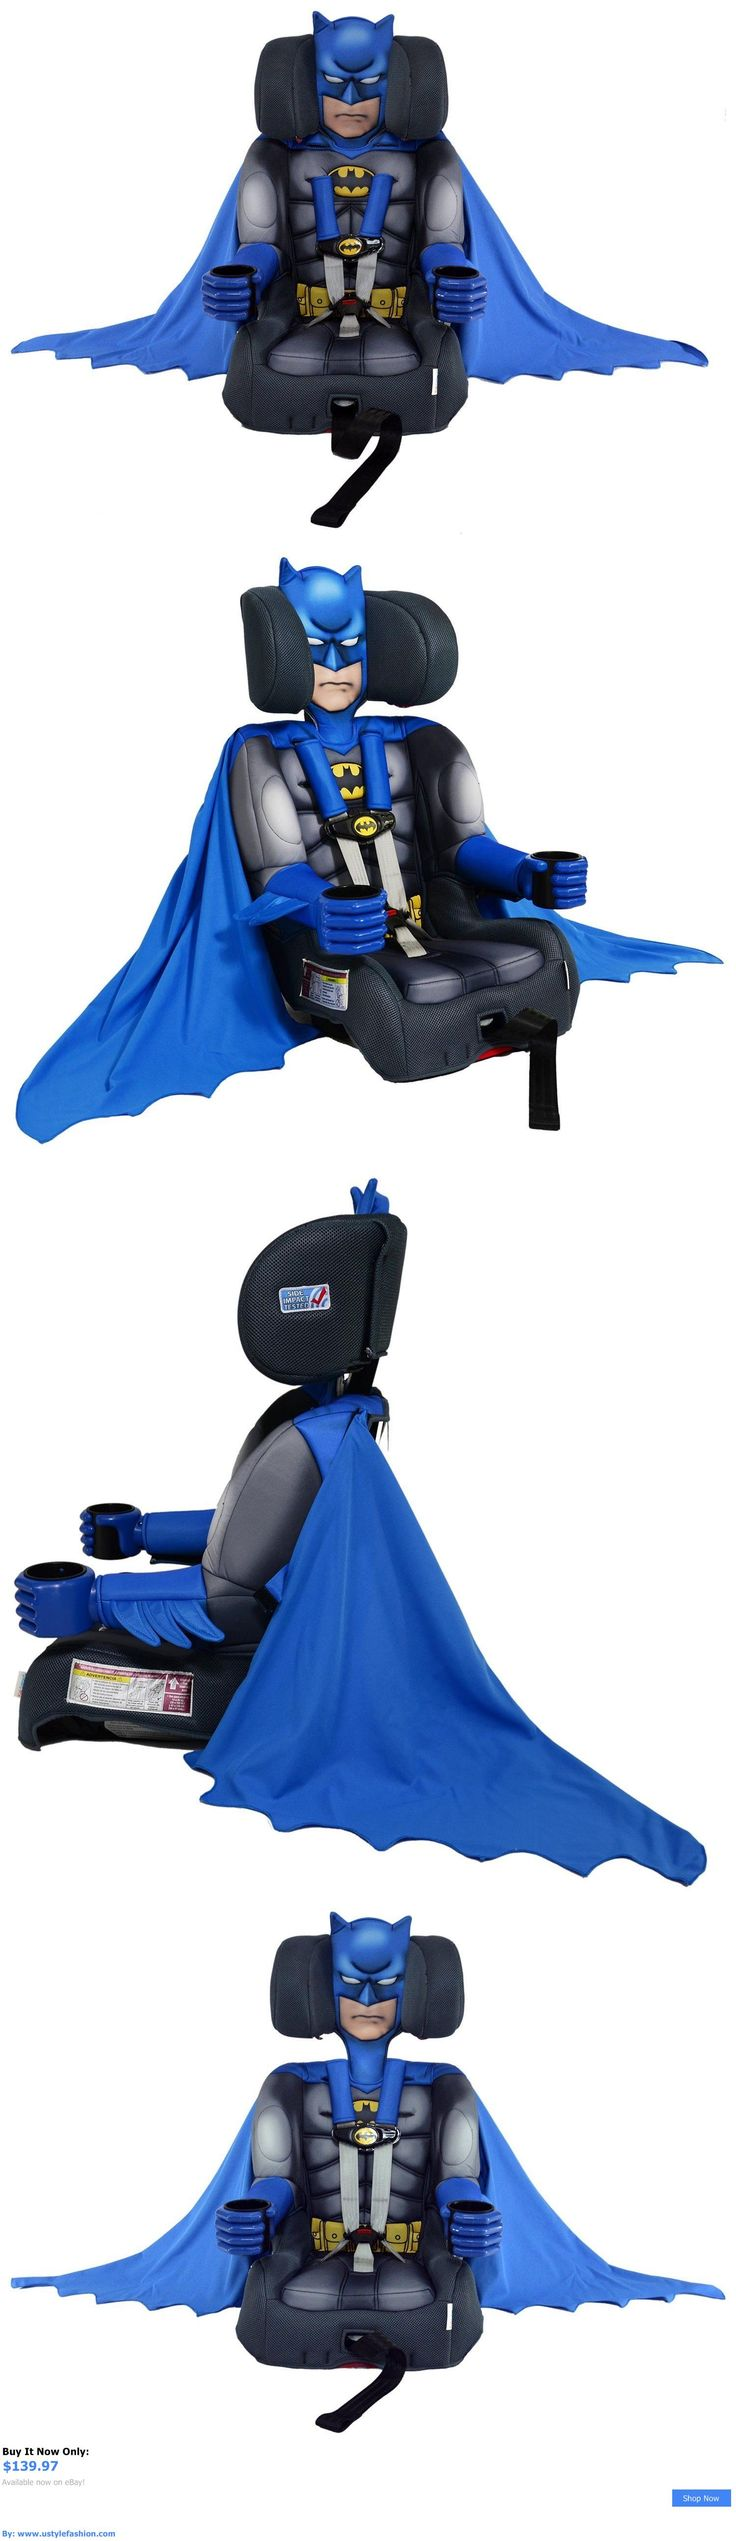 Booster Seats: Kidsembrace Deluxe Combination Booster Car Seat, 5 Point Harness Batman Car Seat BUY IT NOW ONLY: $139.97 #ustylefashionBoosterSeats OR #ustylefashion